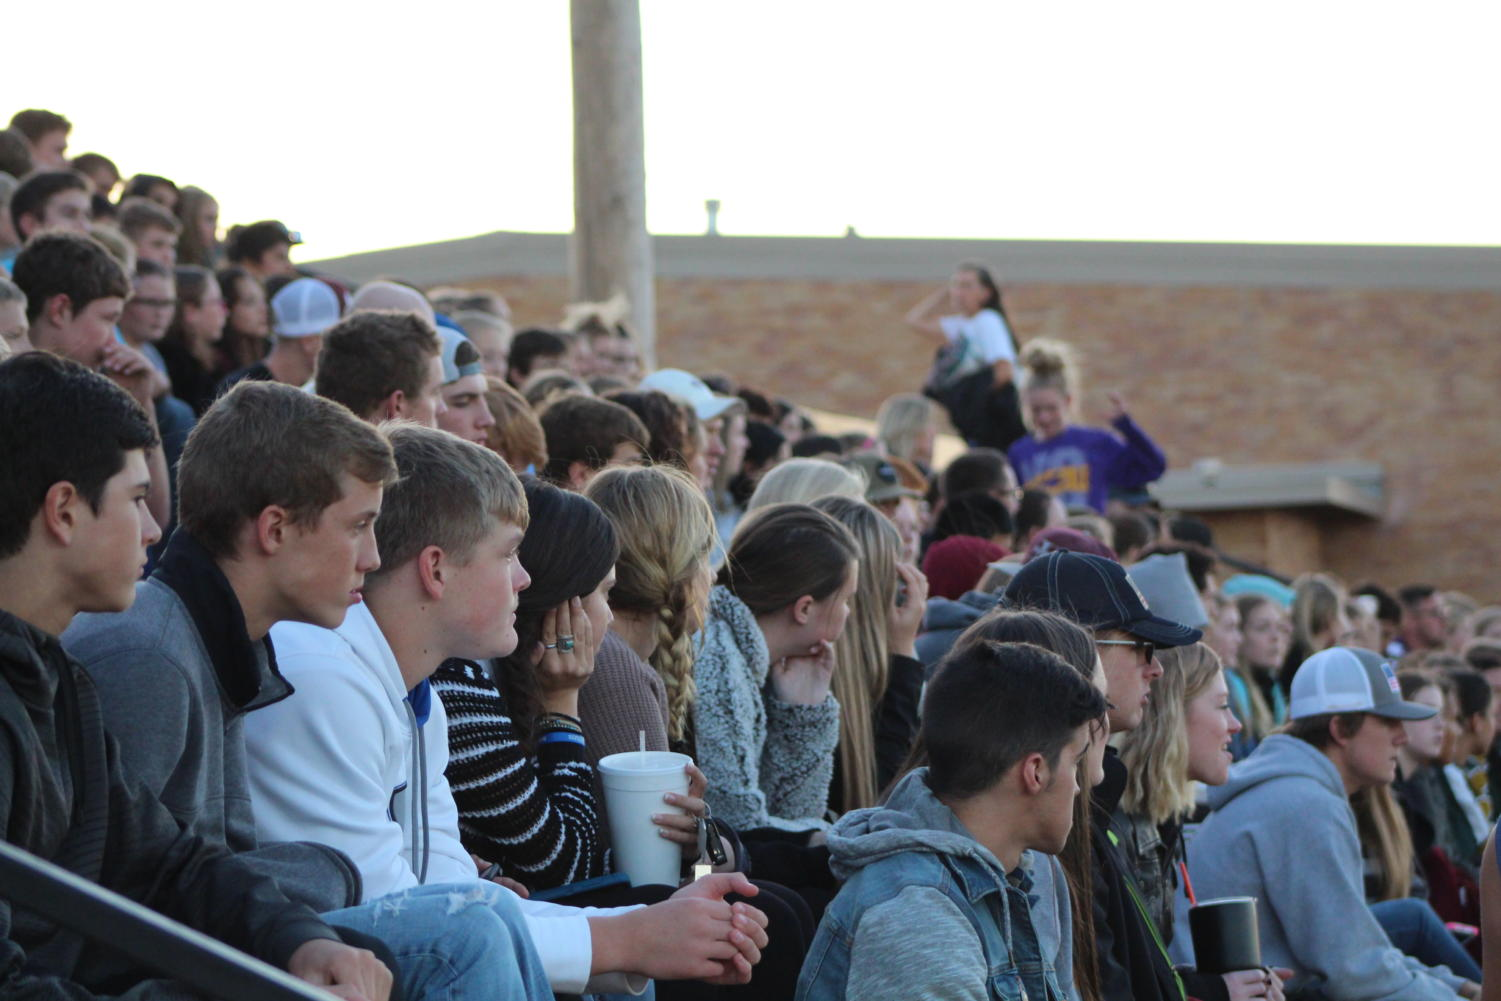 This past fall, Groom Fellowship of Christian Athletes hosted the Fields of Faith for the Panhandle region huddles and packed the home stands with students from area schools. Those students now are fundraising to help send more students to FCA camps. Thanks to donations, each $10 ticket gives purchasers gifts that cost more than that investment, and each ticket also offers an opportunity to win a $10,000 bank card.